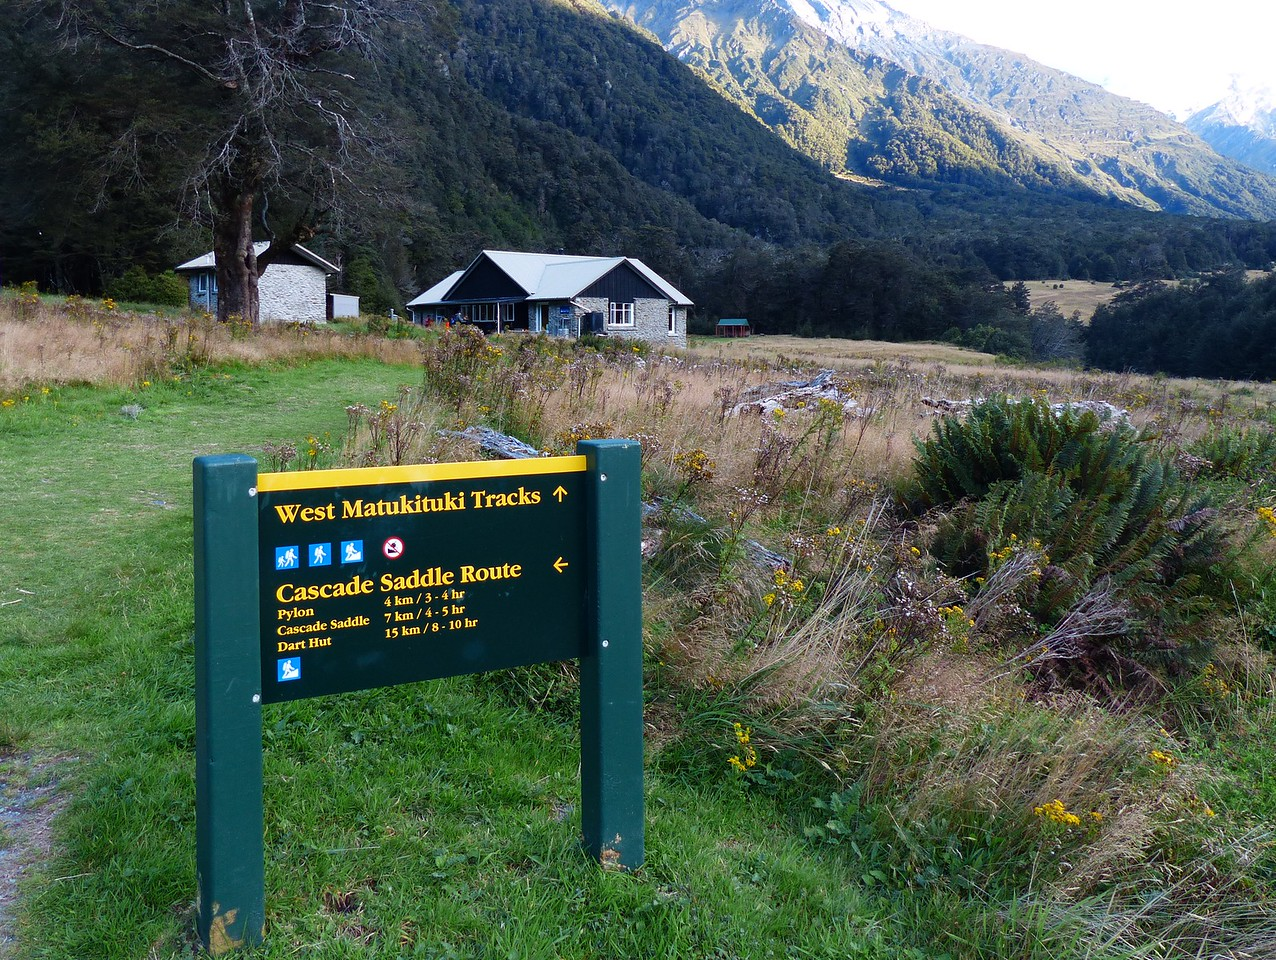 Mt. Aspiring backpack  -  We would spend 2  nights at the Mount Aspiring Hut and do dayhikes.